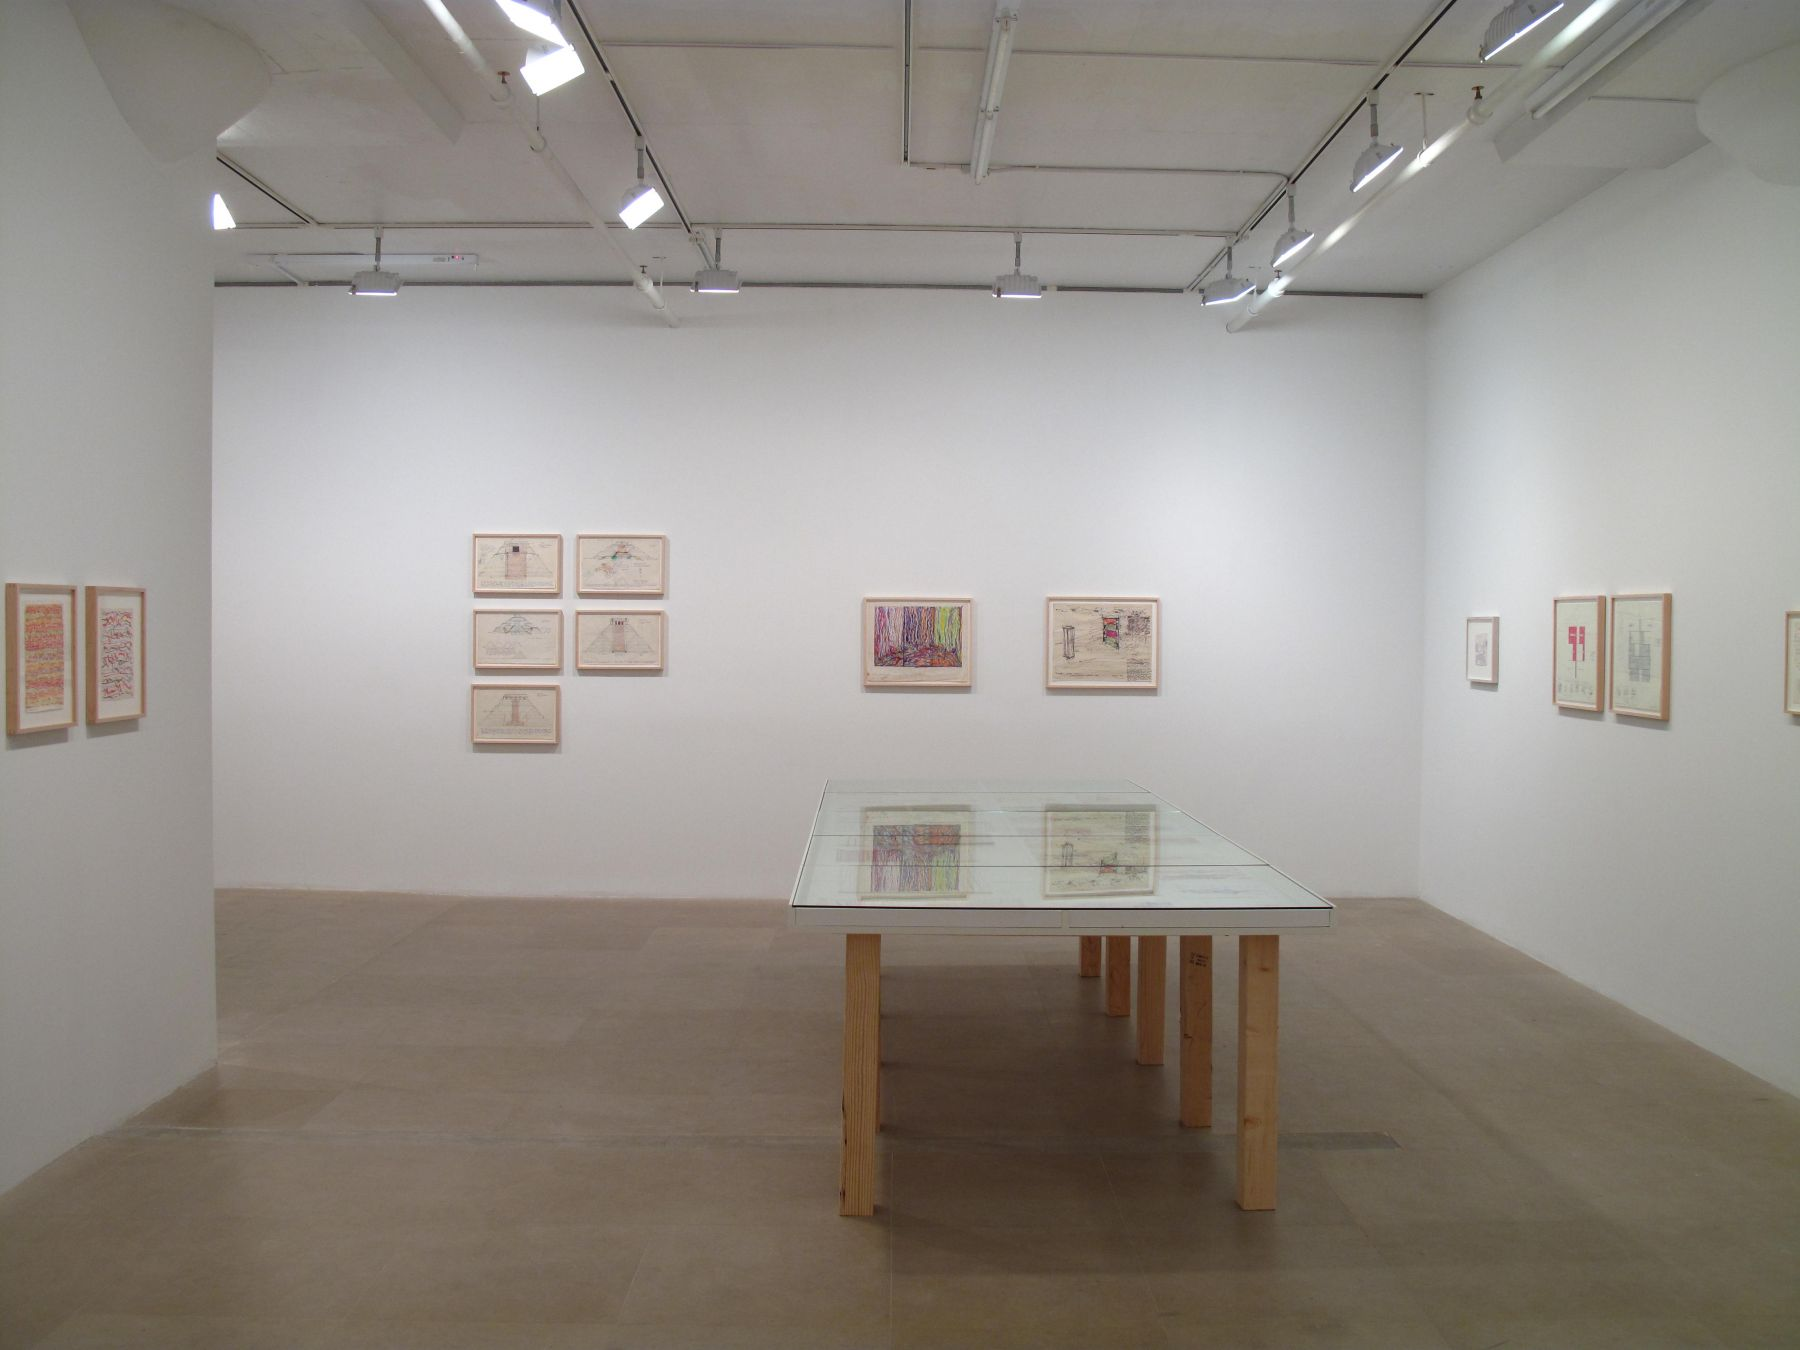 Paul Sharits, Installation view, Greene Naftali, New York, 2009